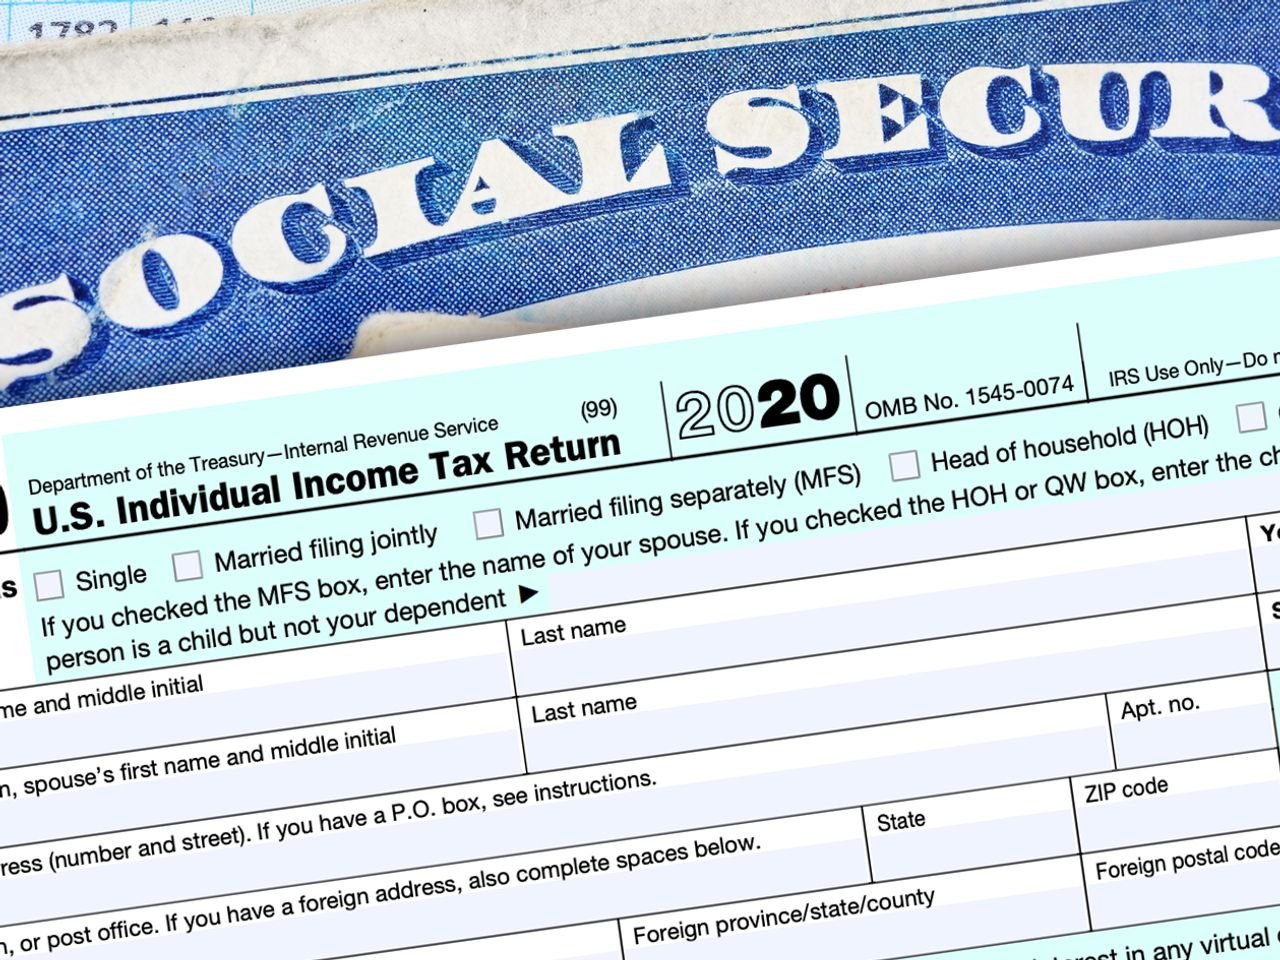 Irs Calendar 2022.37 States Don T Tax Your Social Security Benefits Make That 38 In 2022 Marketwatch